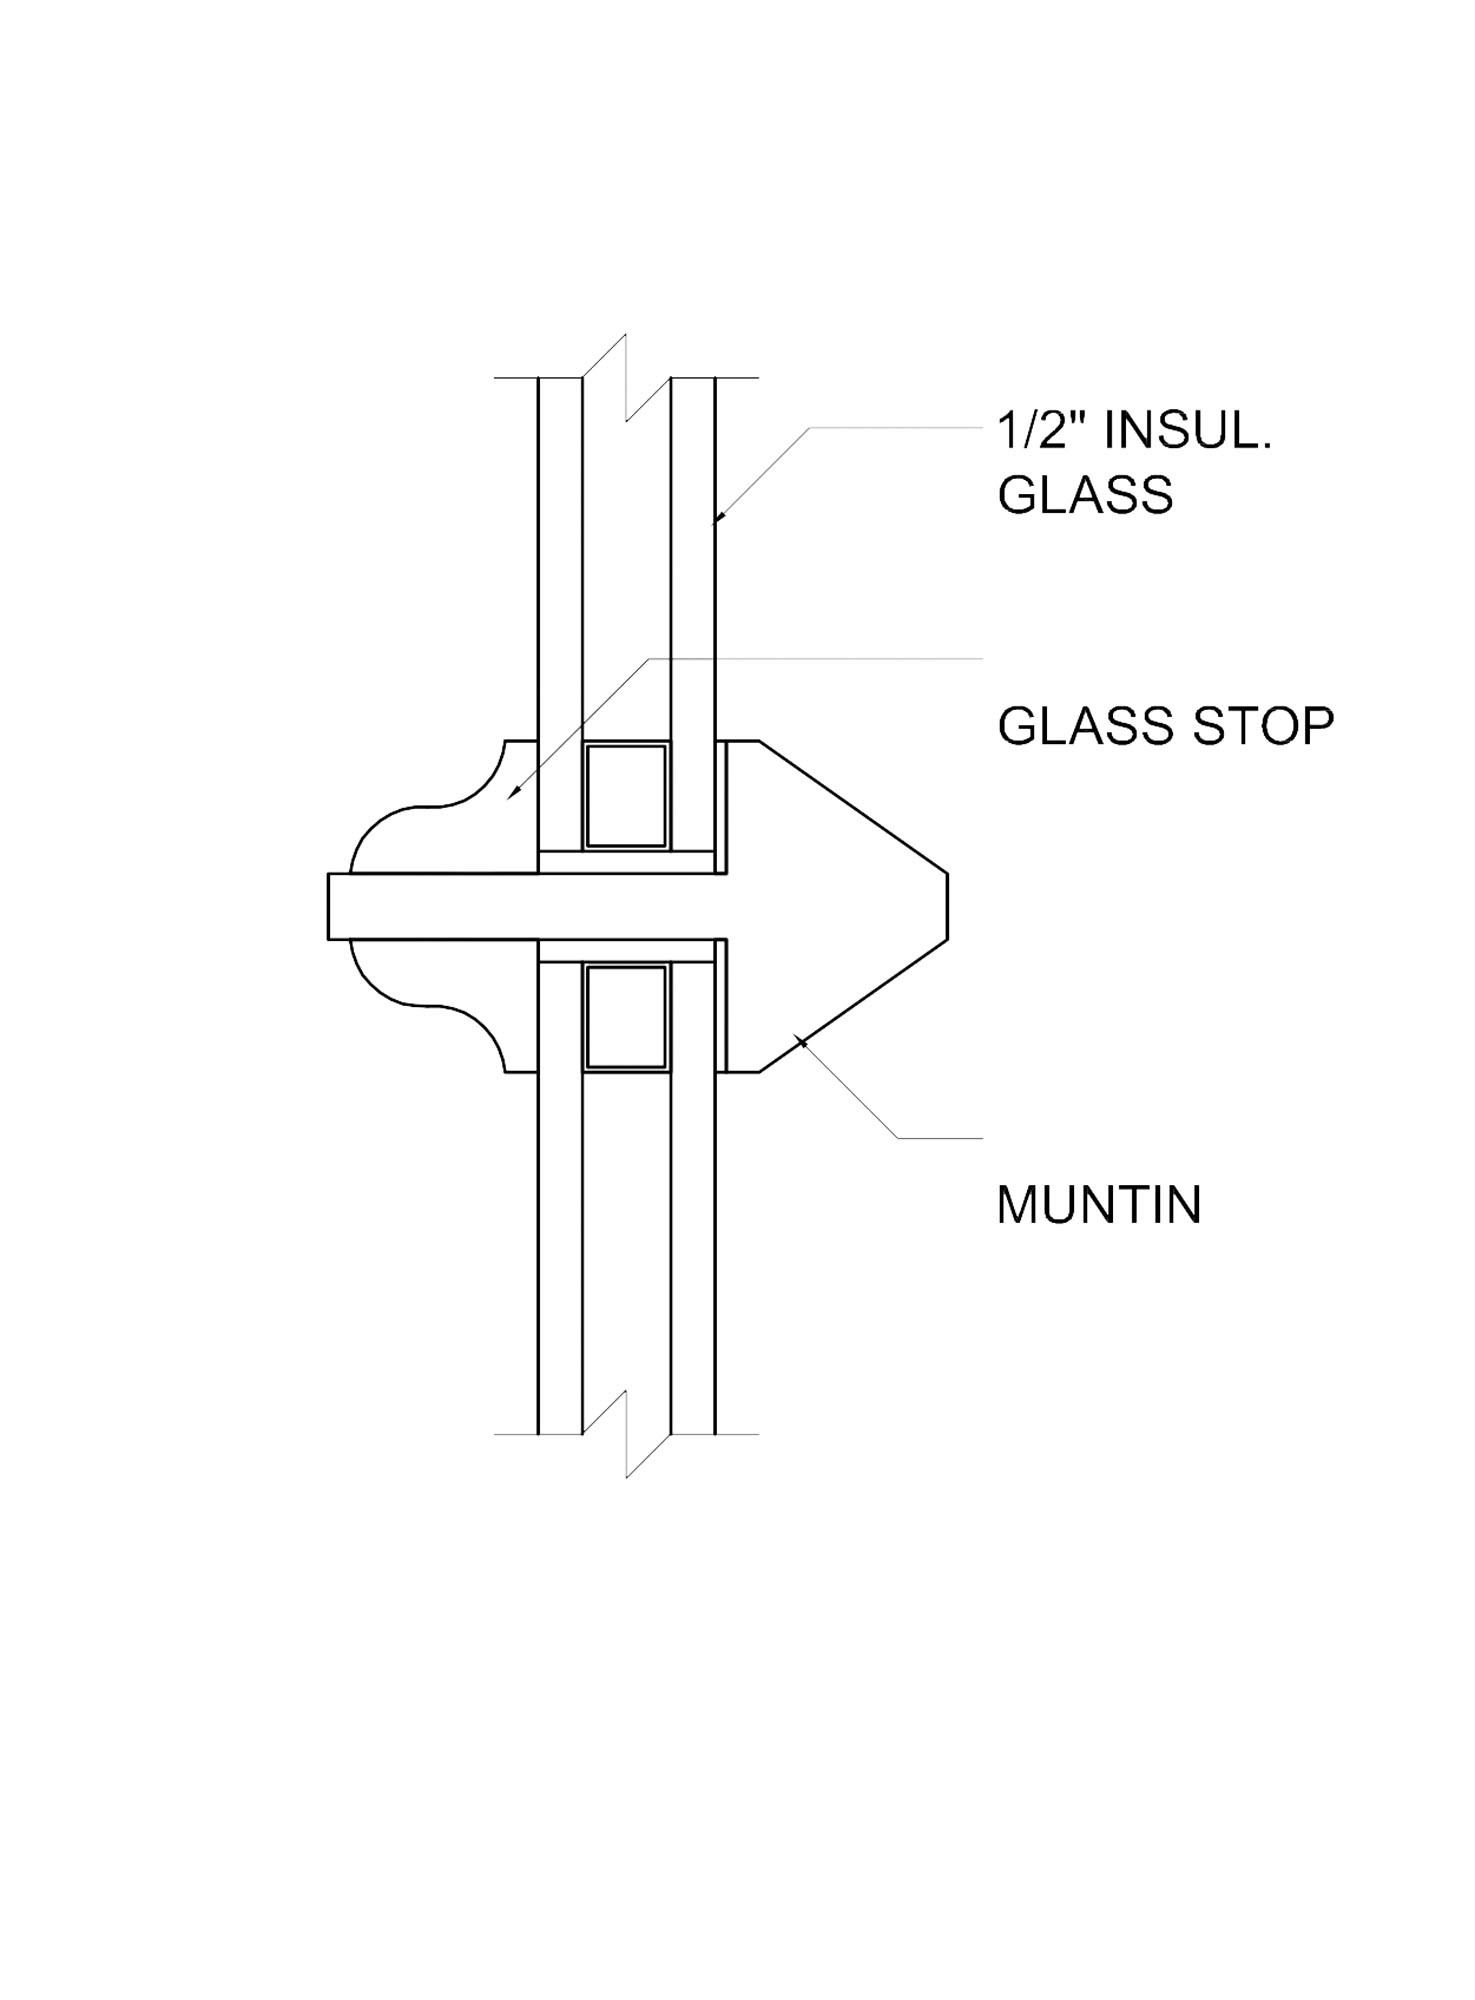 schematic  of a double glazed window from Heartwood Fine Windows & Doors